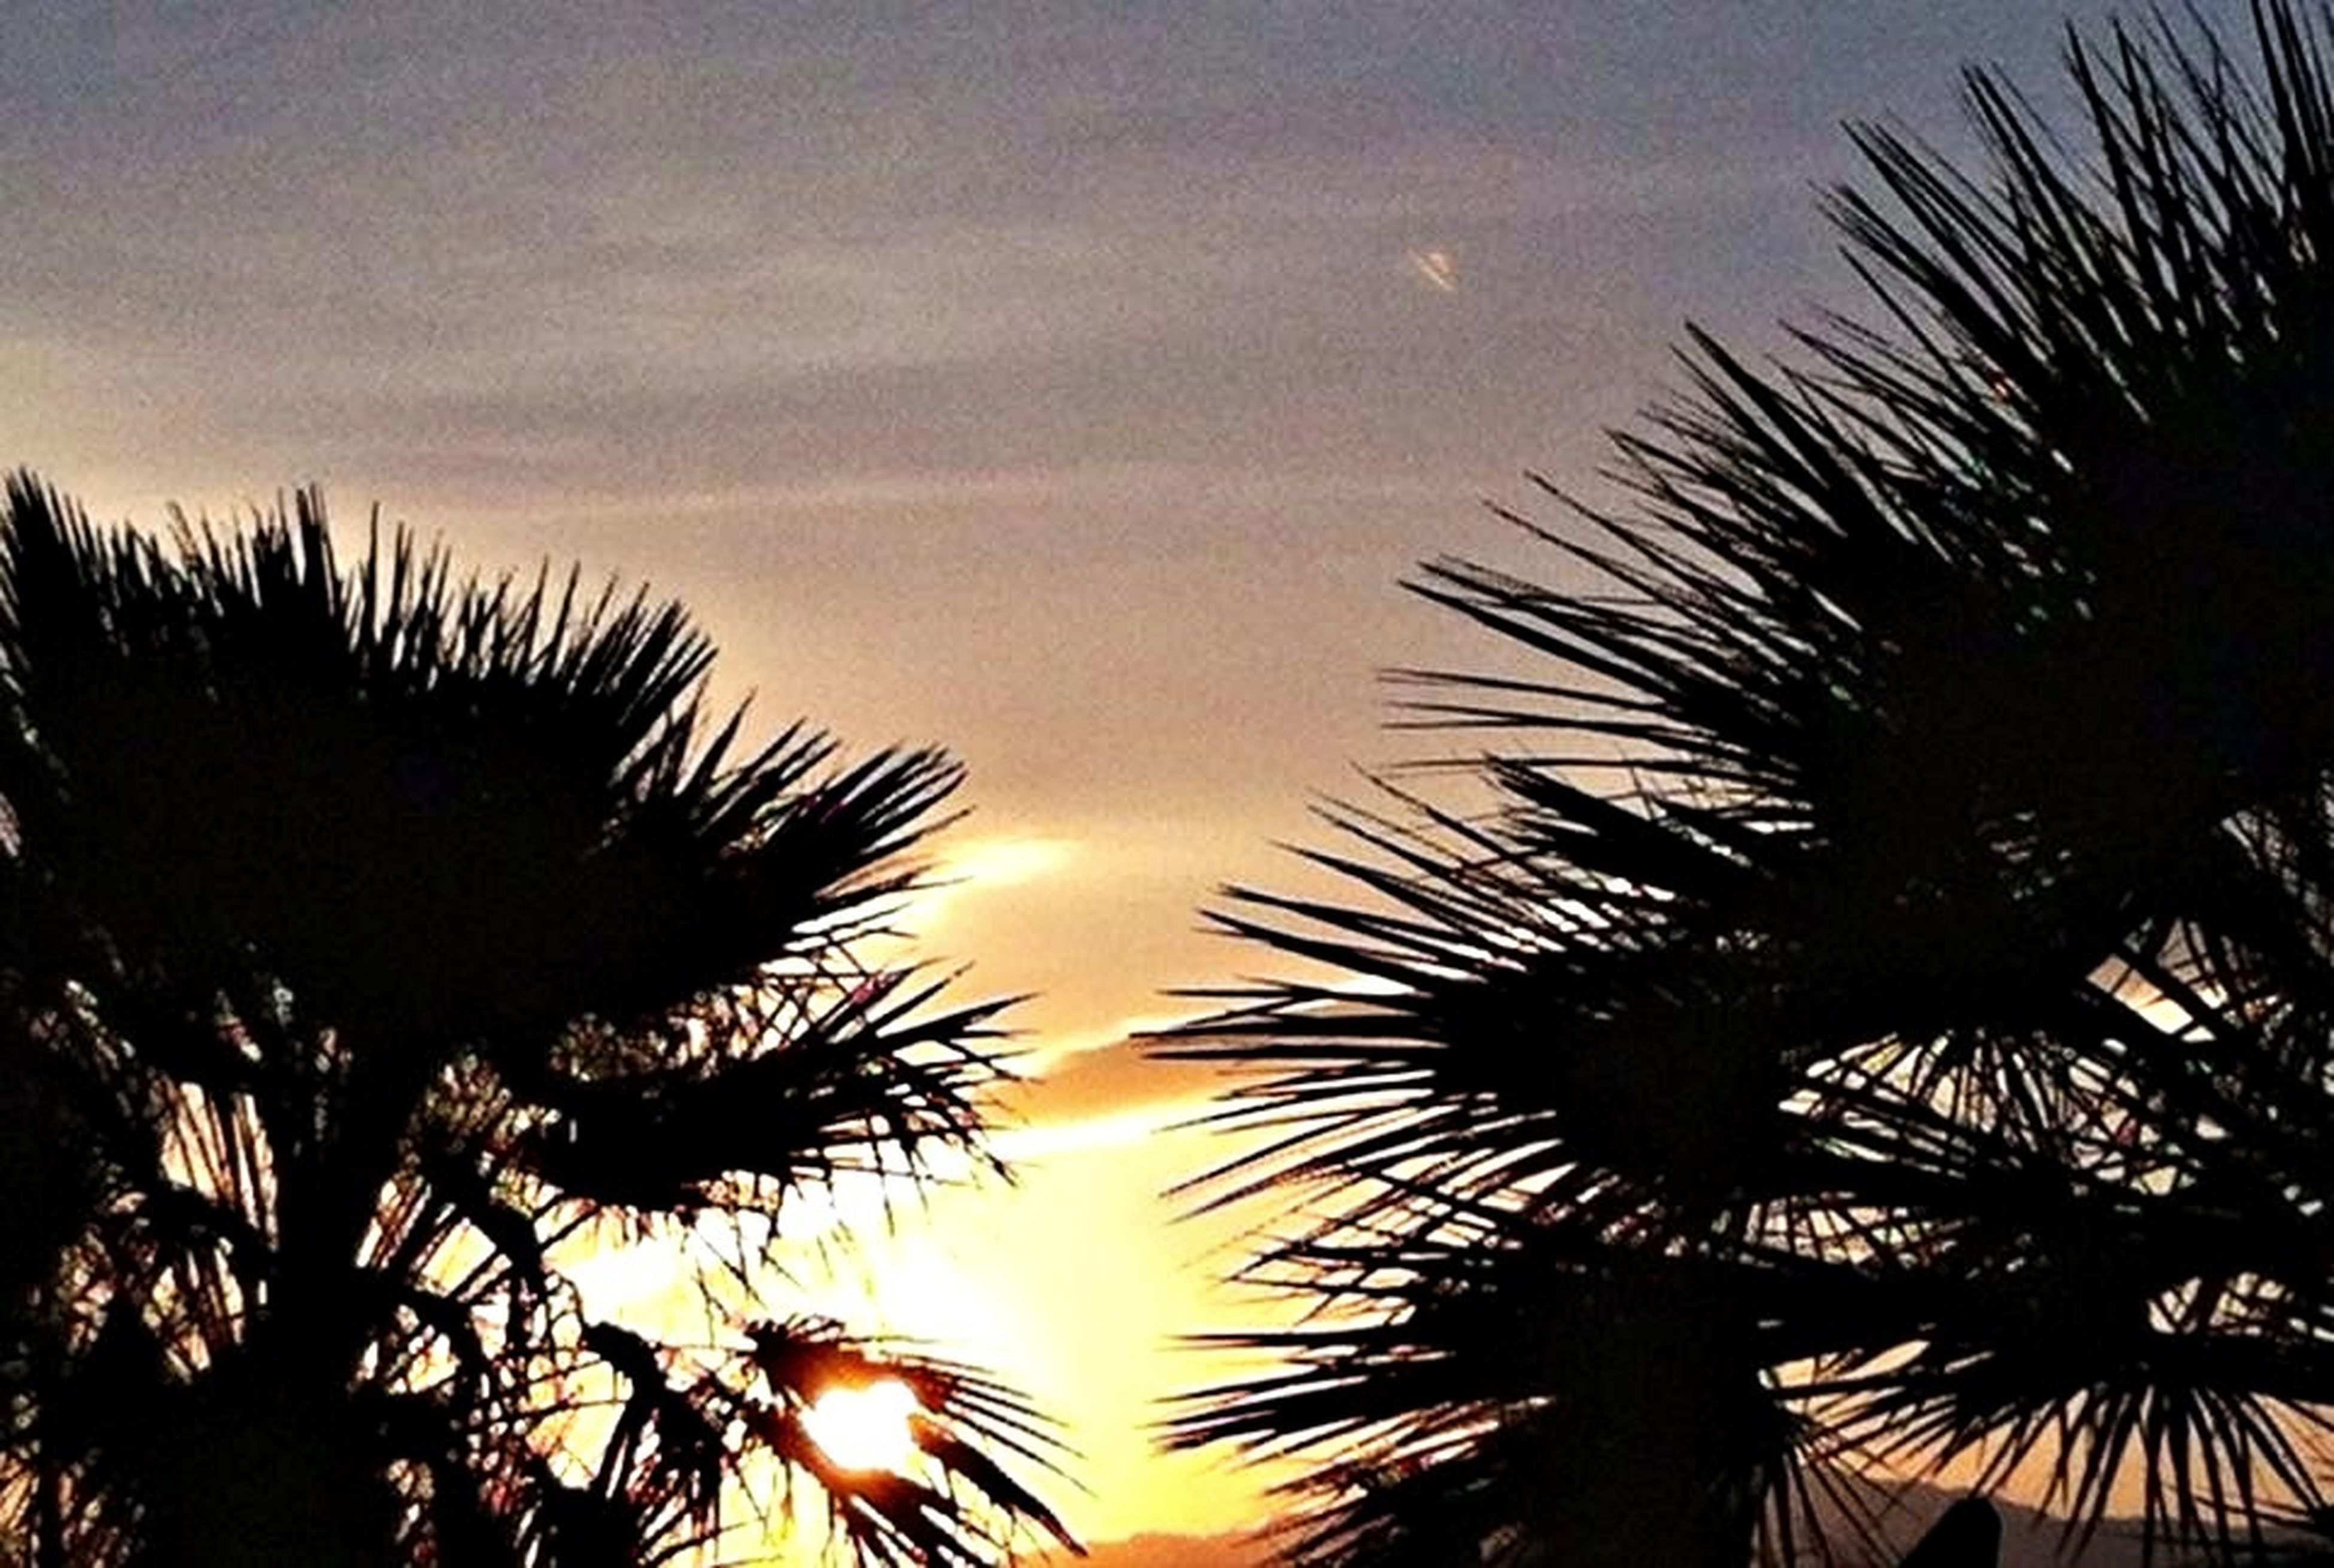 palm tree, low angle view, silhouette, sky, tree, sunset, growth, beauty in nature, nature, tranquility, palm leaf, scenics, tranquil scene, outdoors, cloud - sky, no people, dusk, palm frond, coconut palm tree, idyllic